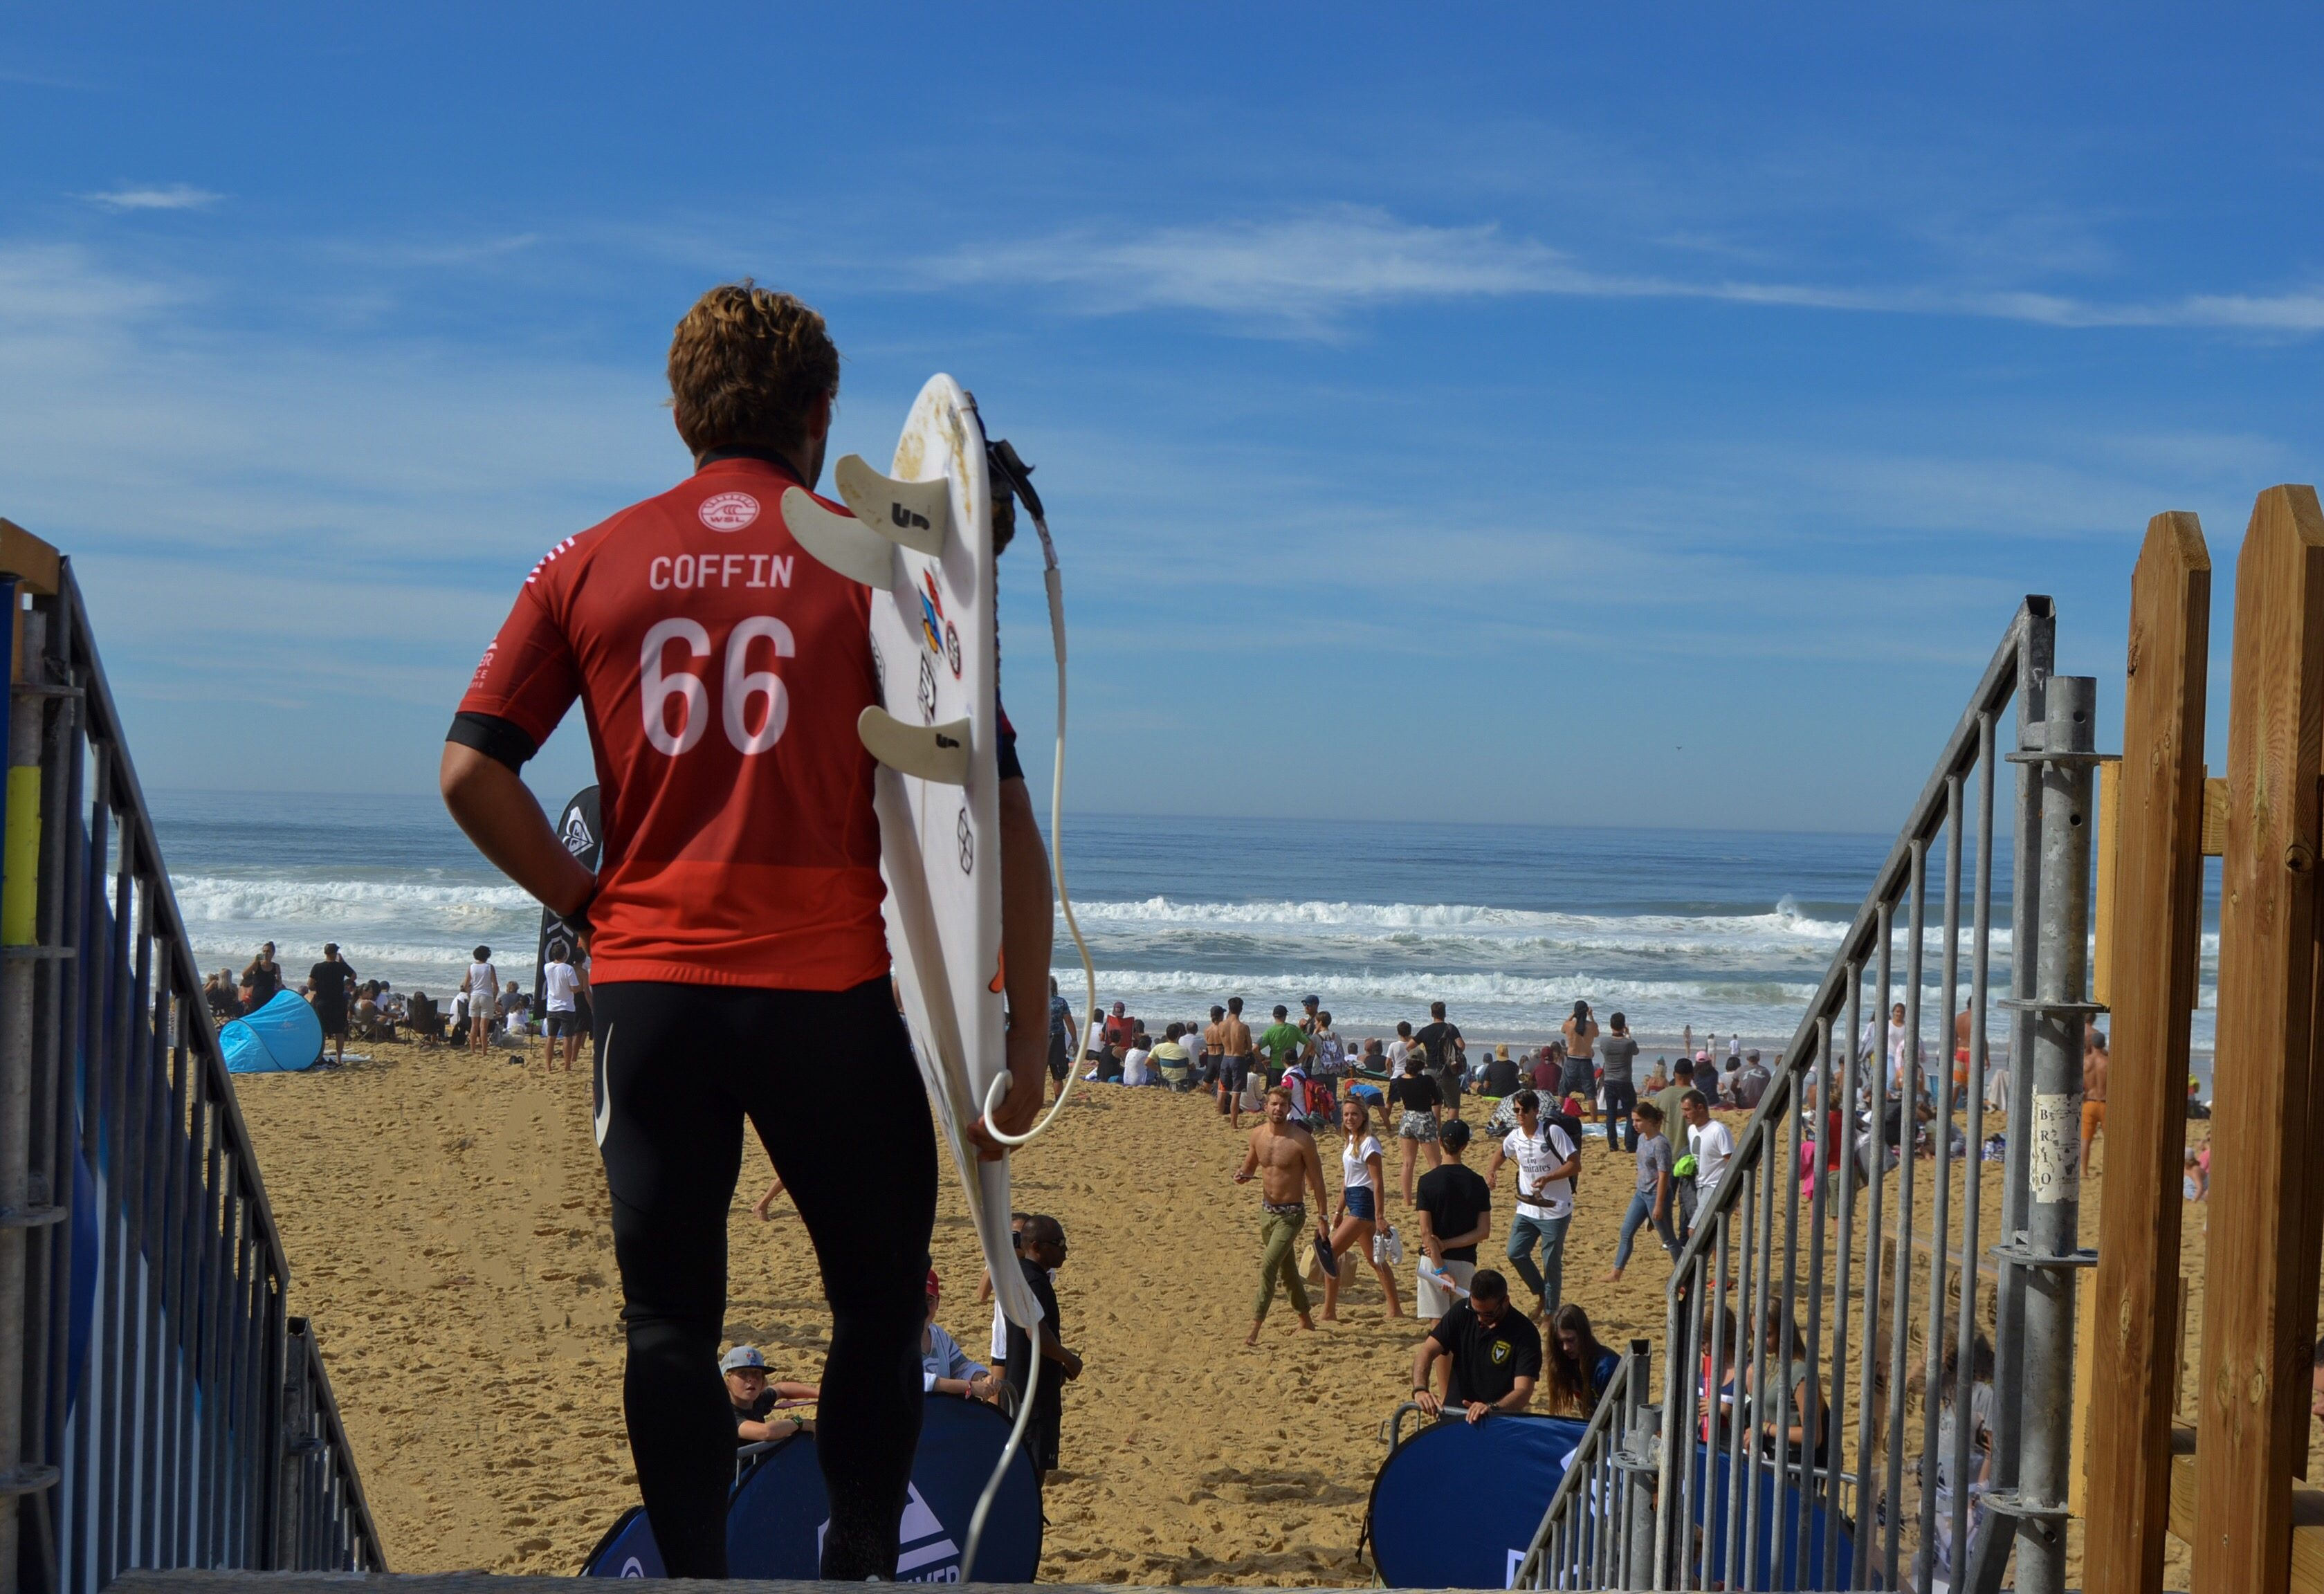 quiksilver-pro-france-roxy-pro-france-surf-quik-pro-roxy-pro-hossegor-culs-nuls-conner-coffin-landes-wsl-vagues-world-surf-league-les-ptits-touristes-blog-voyage